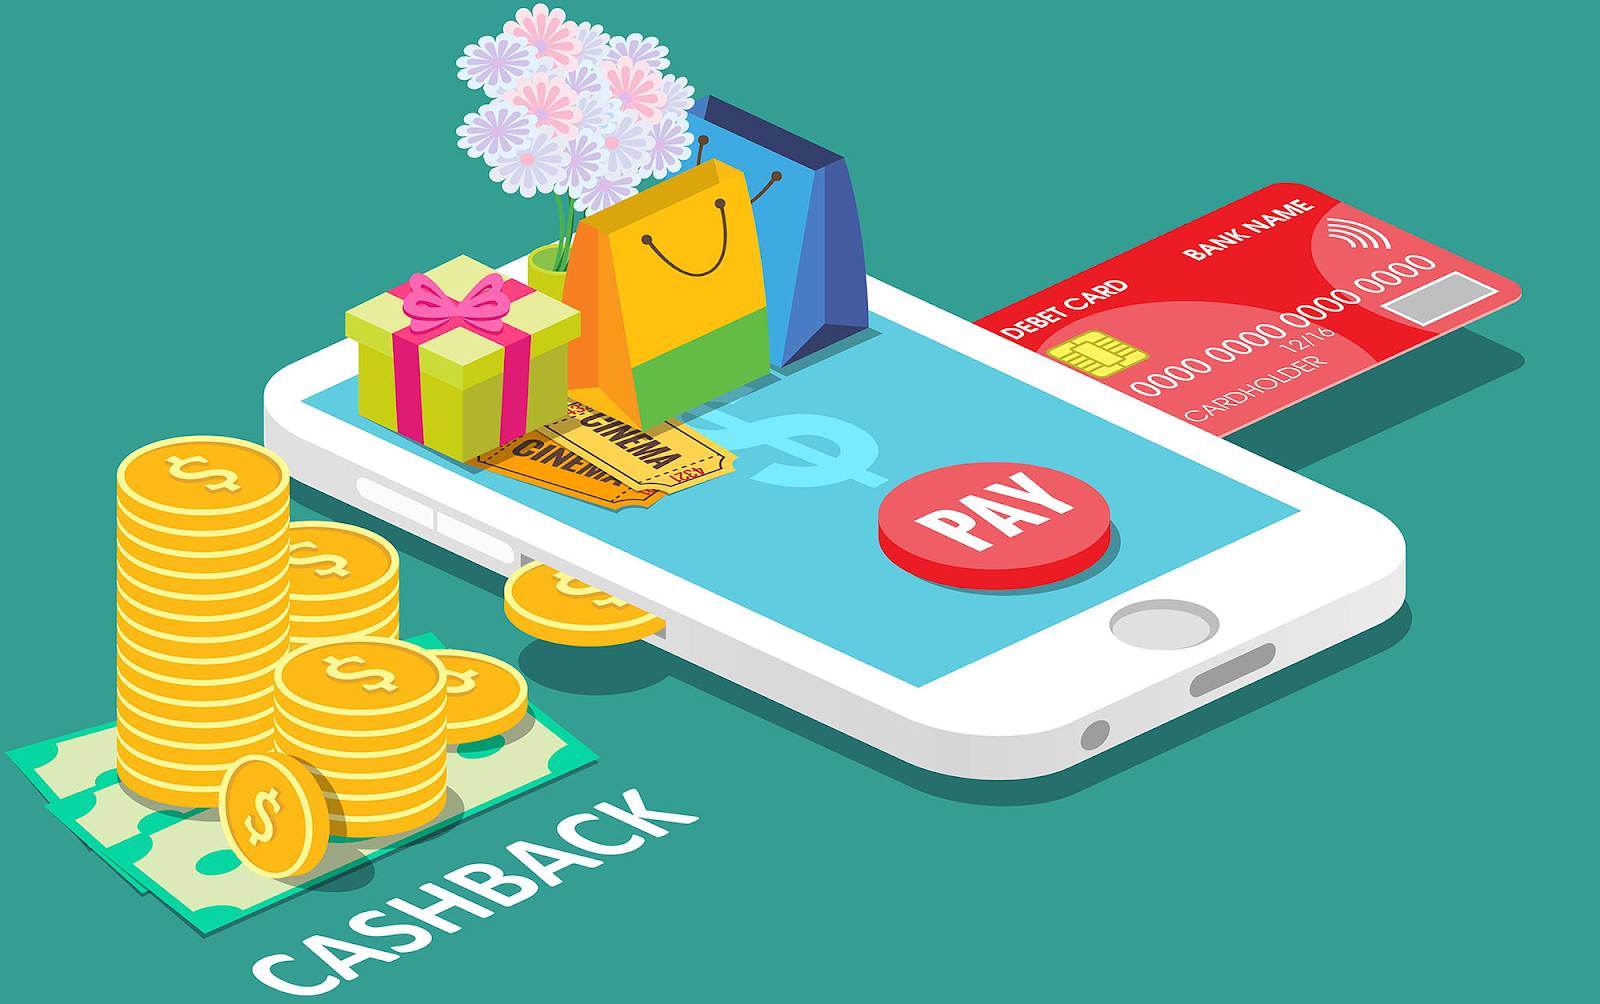 Use cashback services and order JD Com products